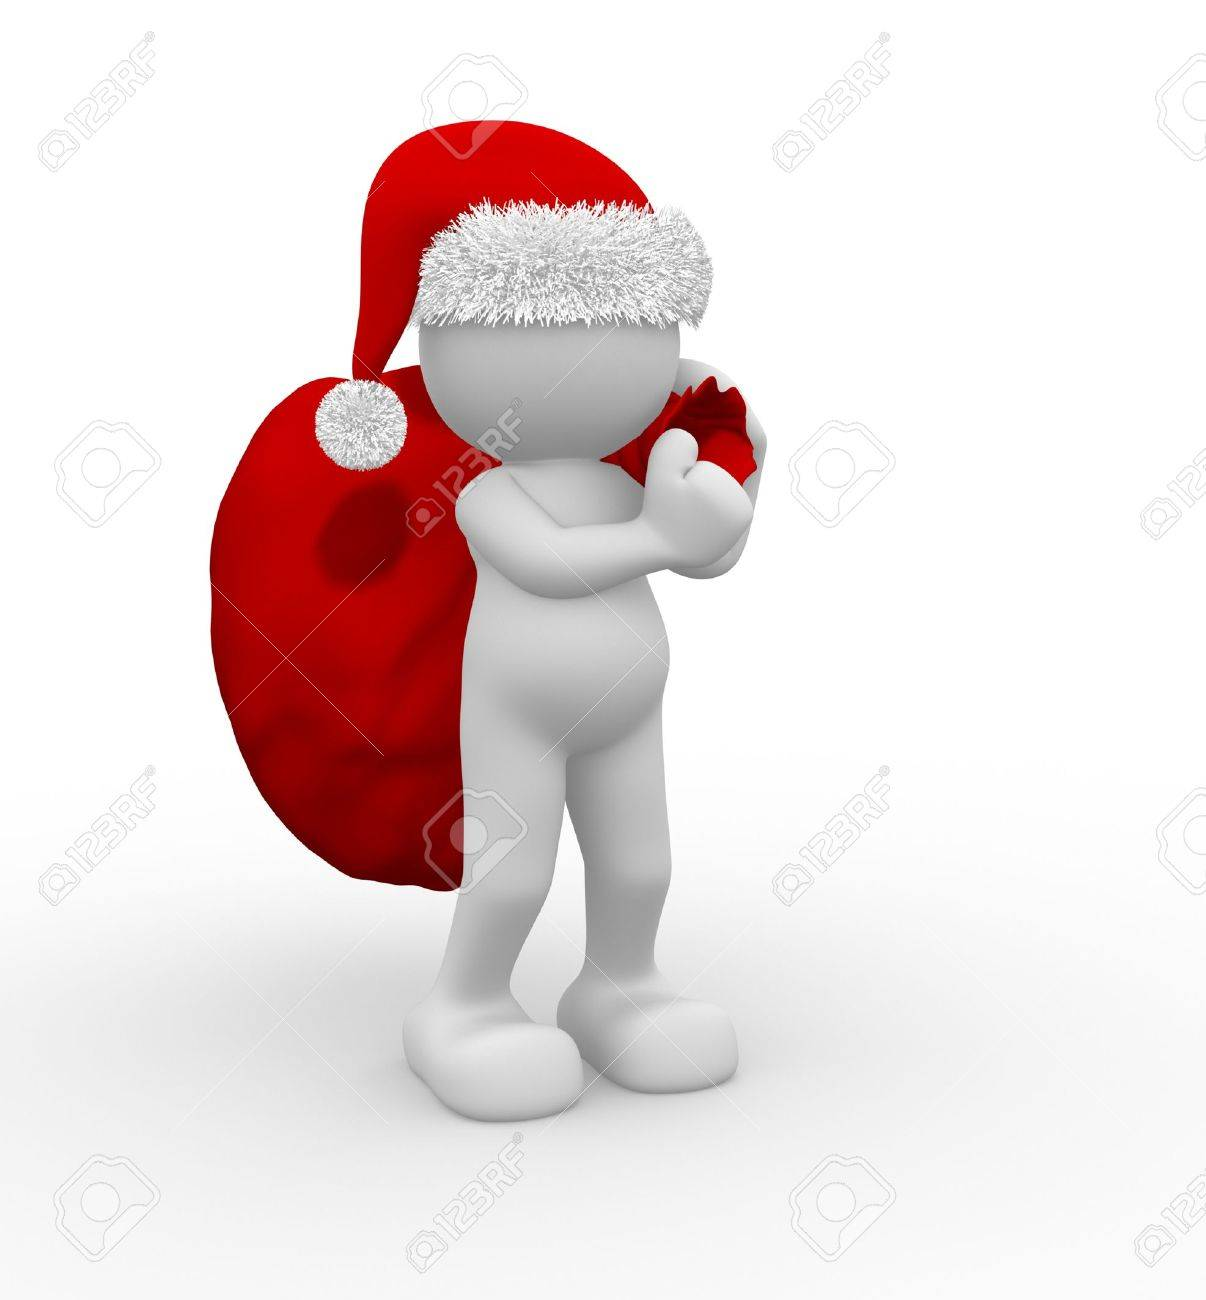 3d people - human character Santa Claus  with bag full of gifts. 3d render illustration Stock Photo - 14664948